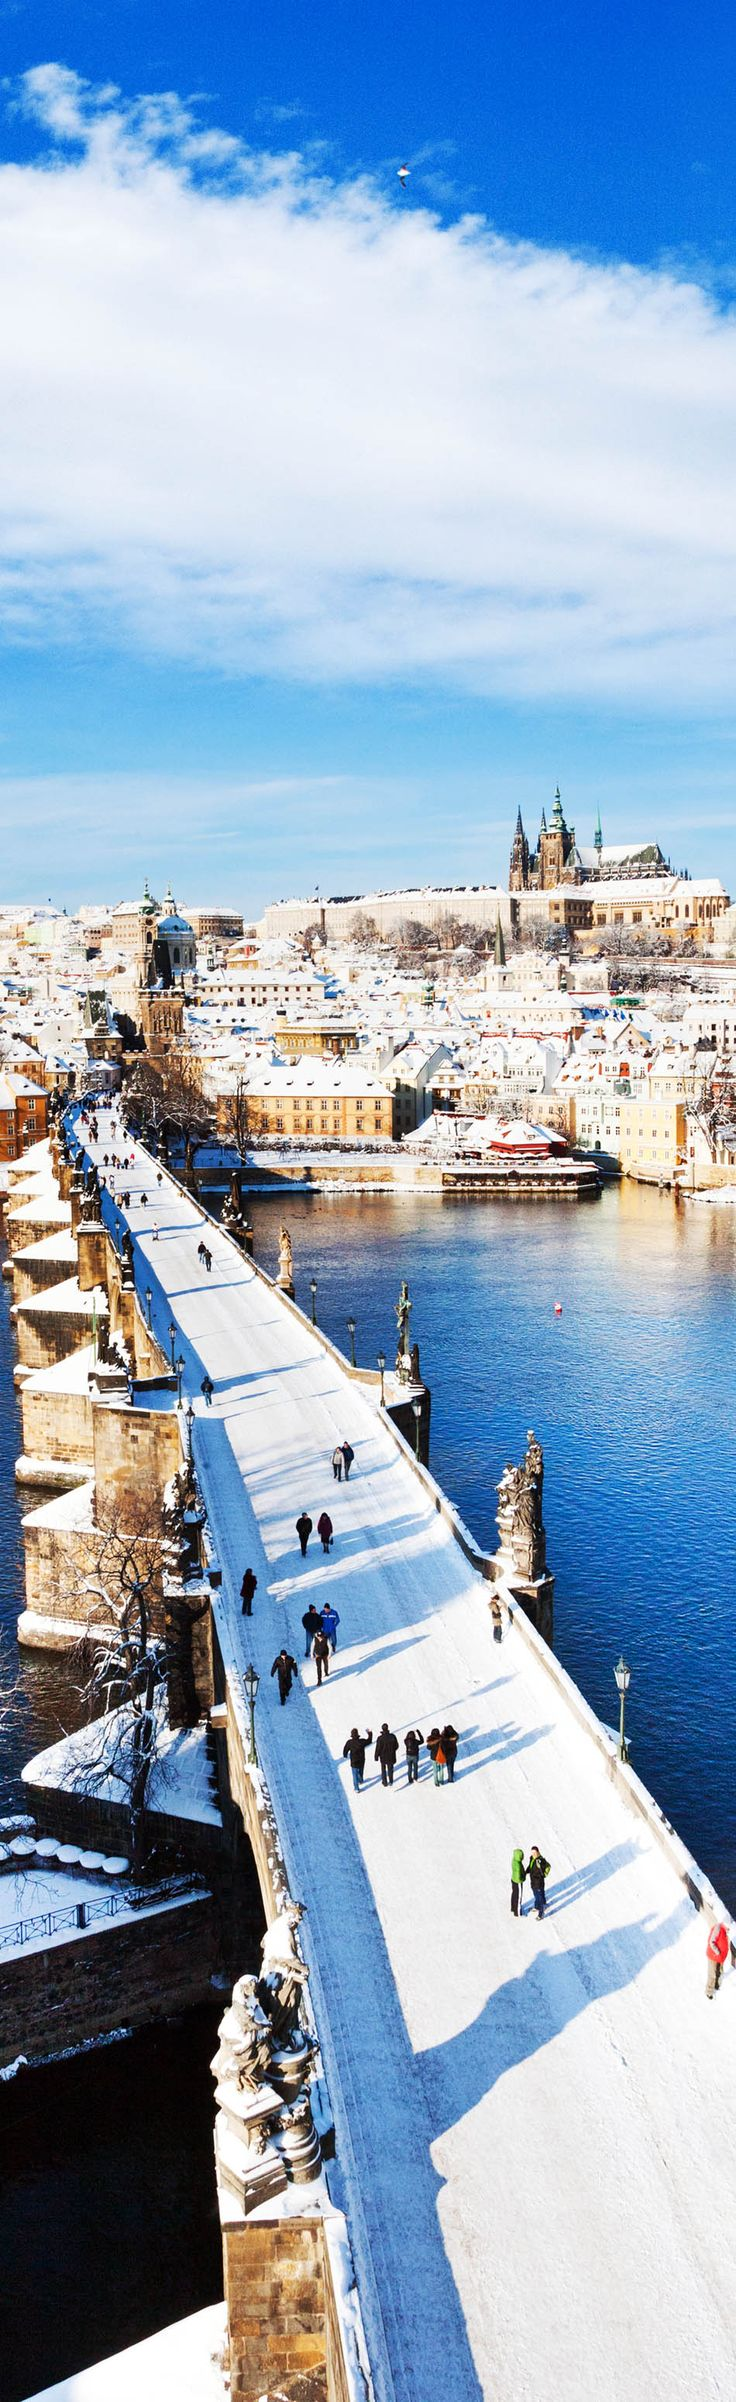 Prague castle and Charles bridge, Prague (UNESCO), Czech republic auch im Winter ein Traum